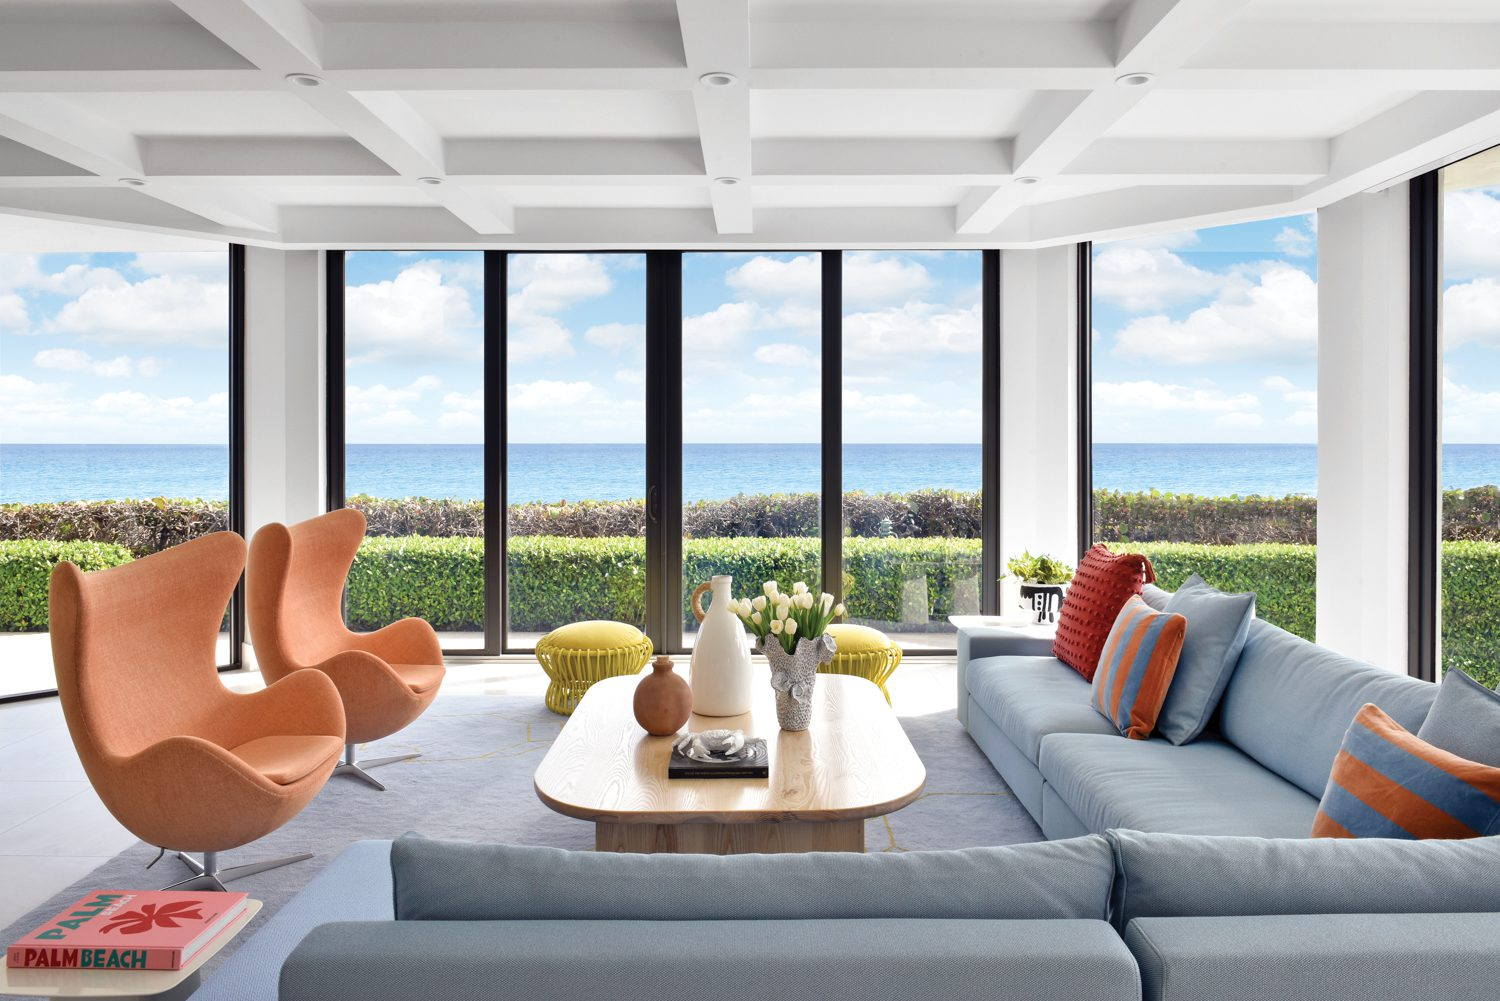 In the living area, which enjoys front-row ocean views, Arne Jacobsen Egg chairs join a Didier Gomez Exclusif sectional upholstered in Viñas's Sister Solid polyester-acrylic.